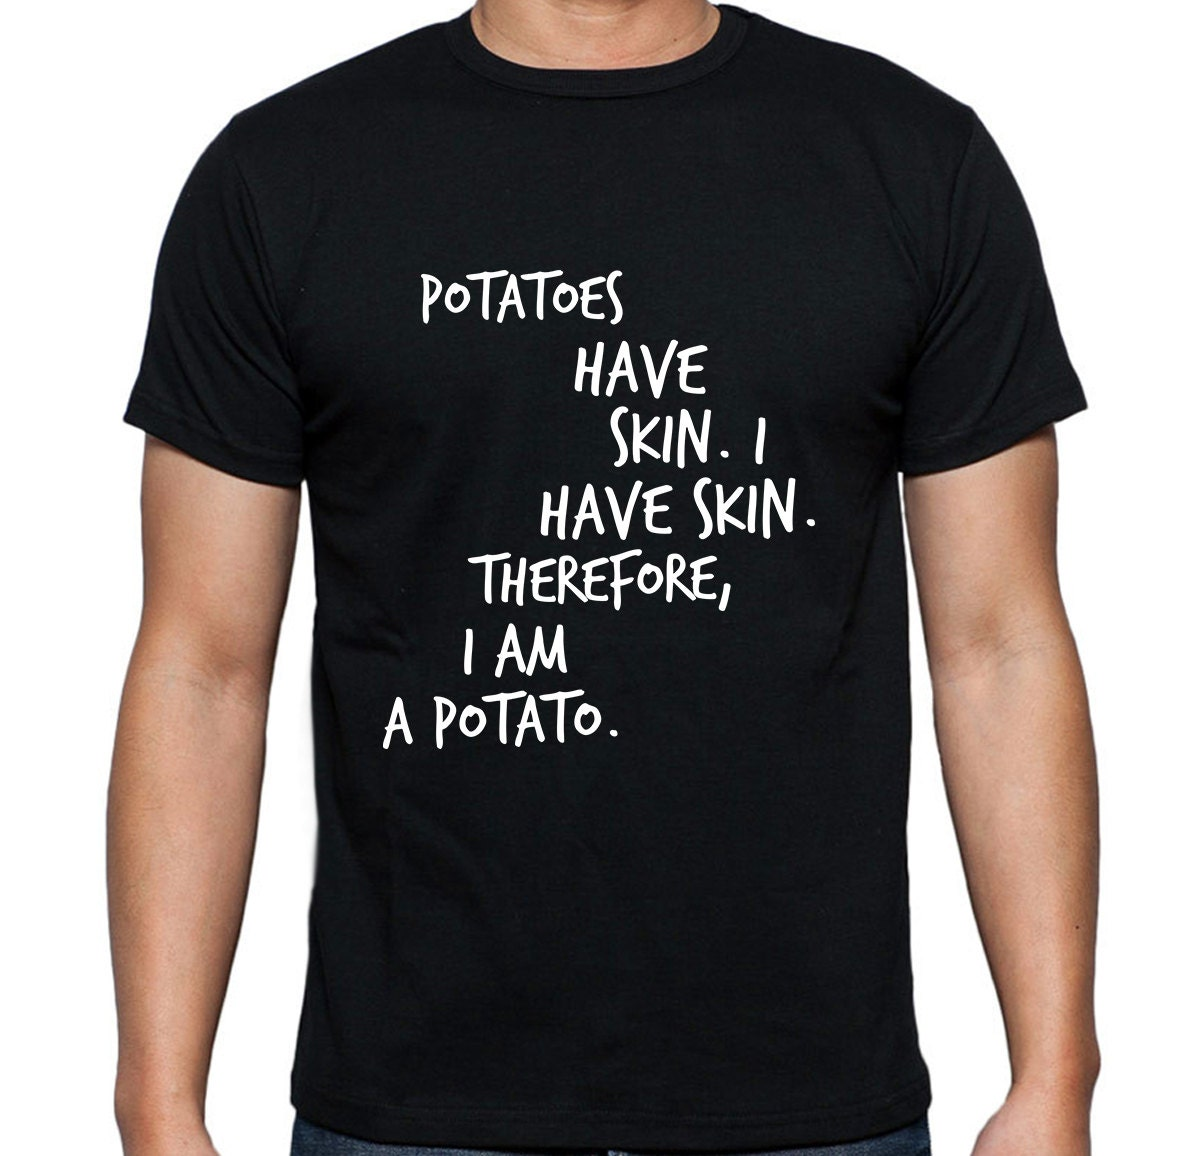 Potatoes Have Skin T-Shirt 8 Colors Humor Shirt Tumblr